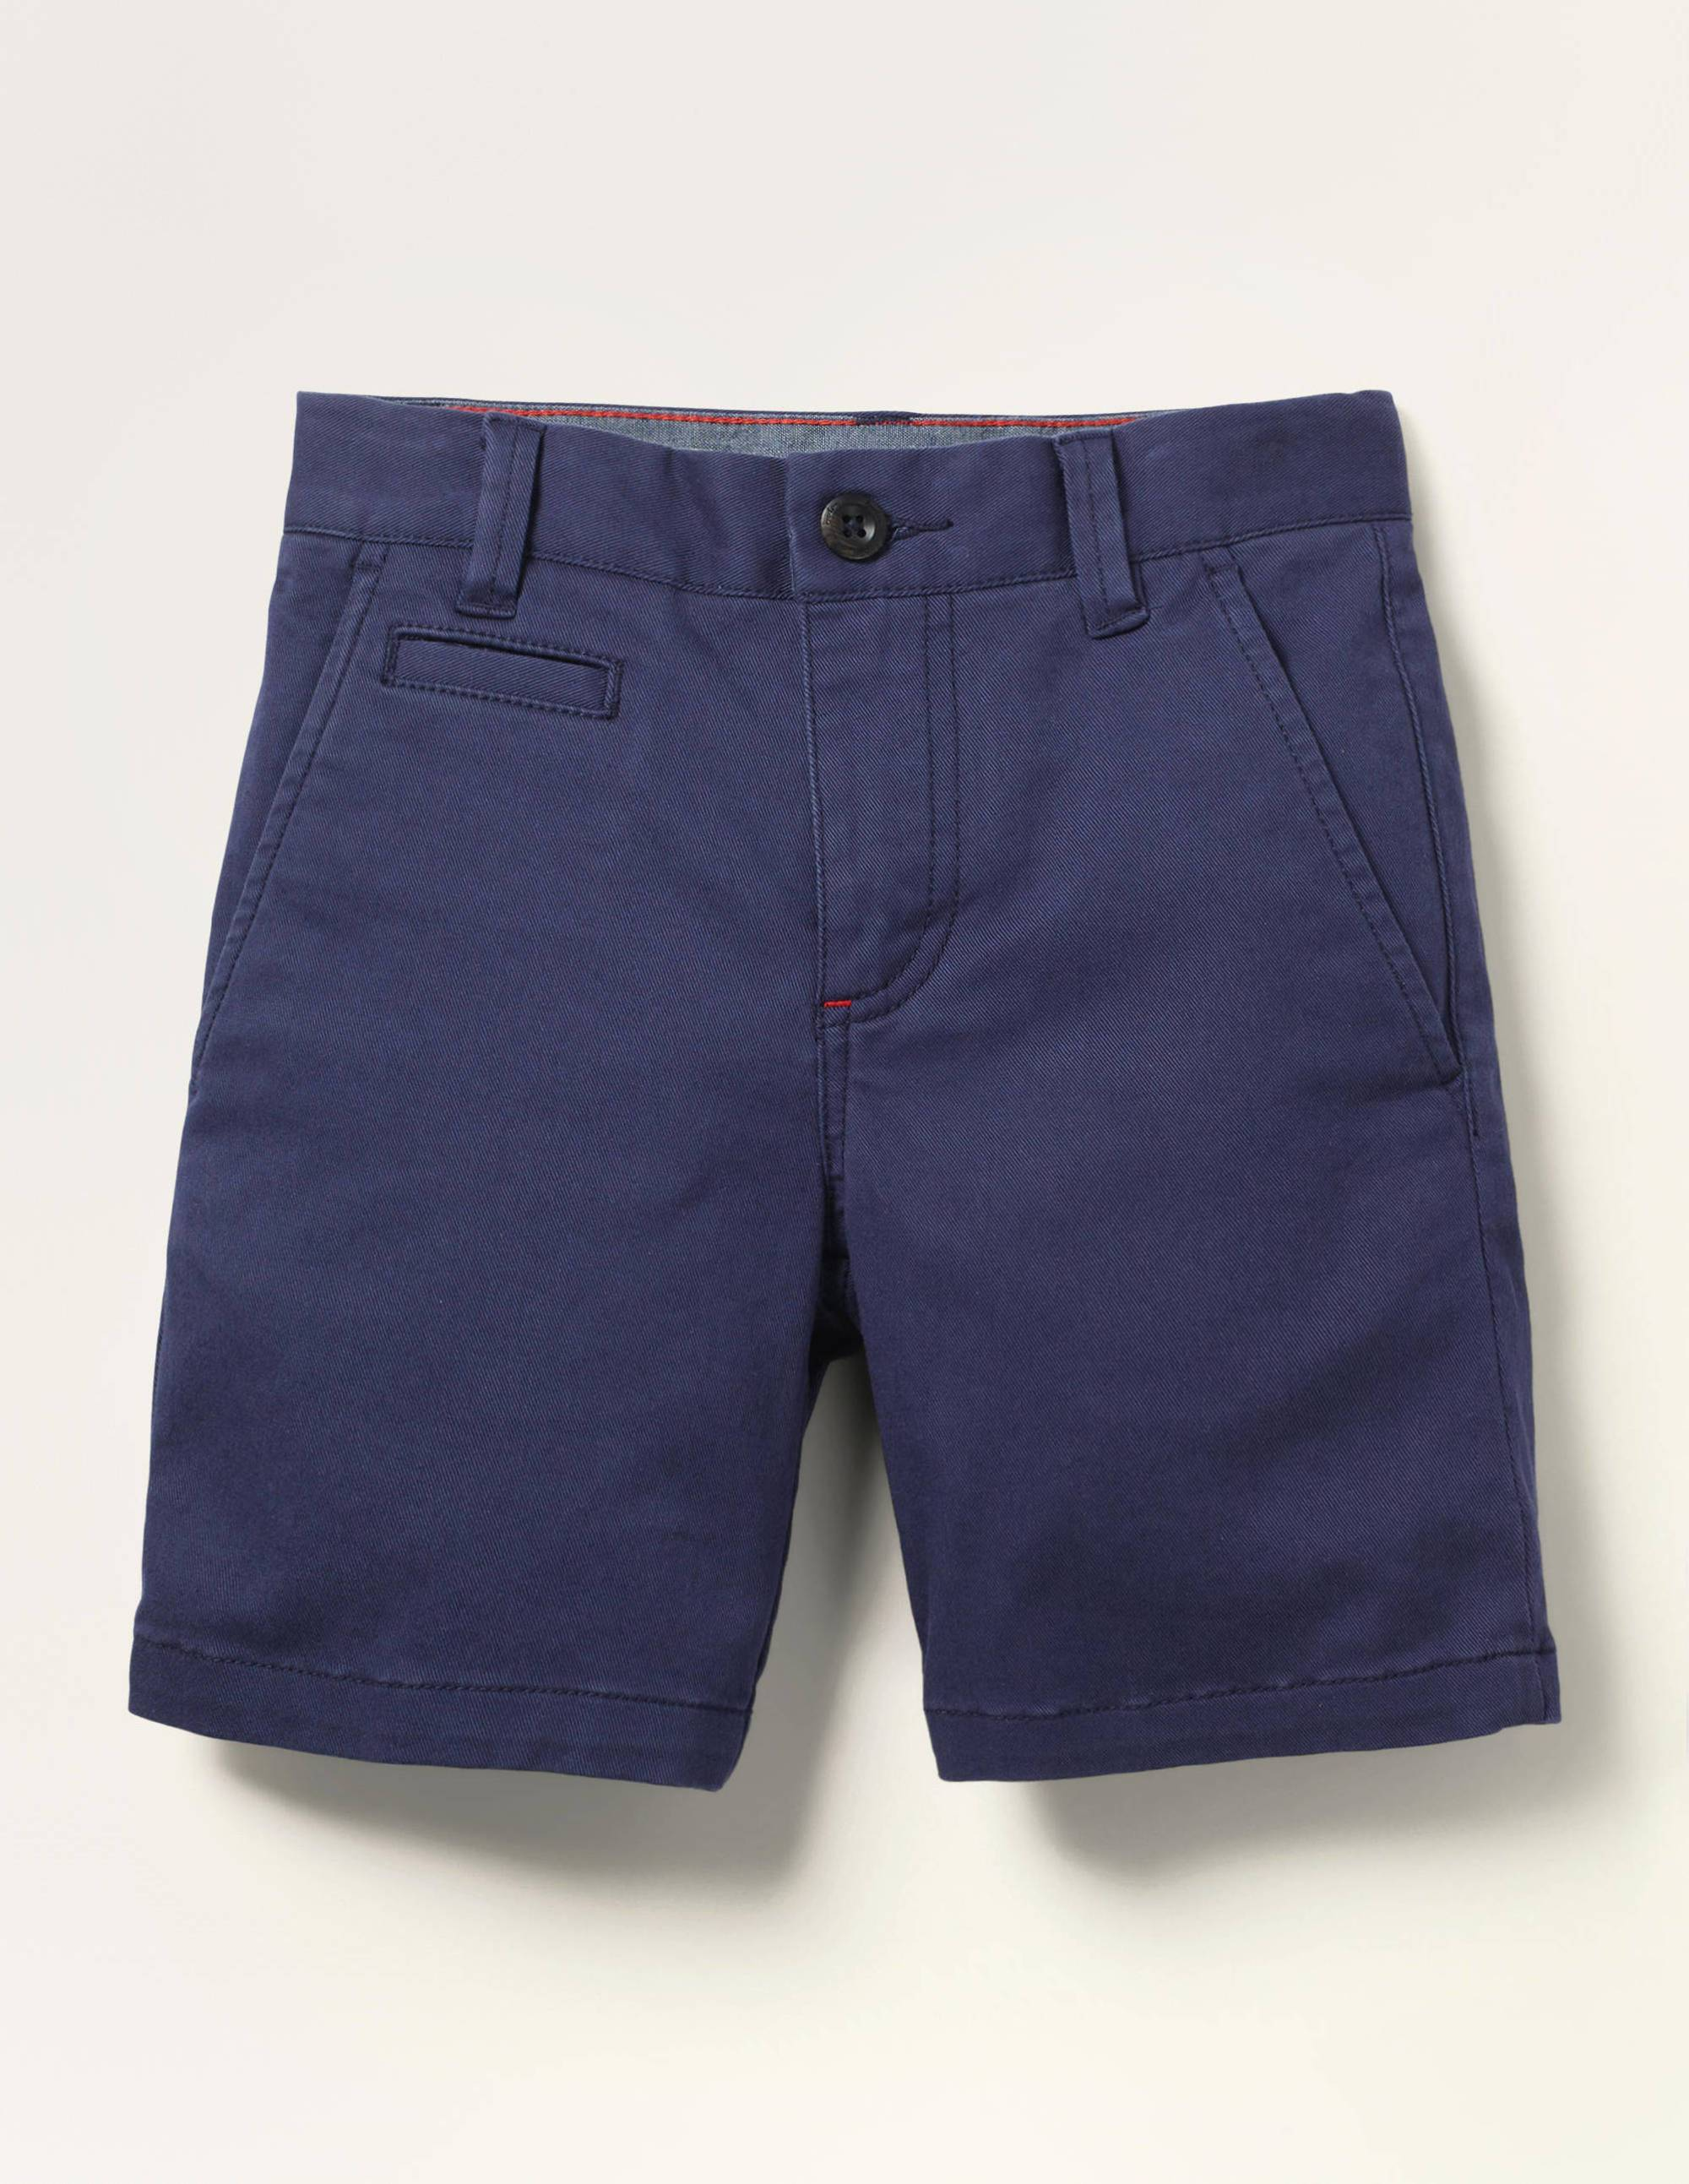 Mini Short chino NAV Femme Boden, Blue - 10a